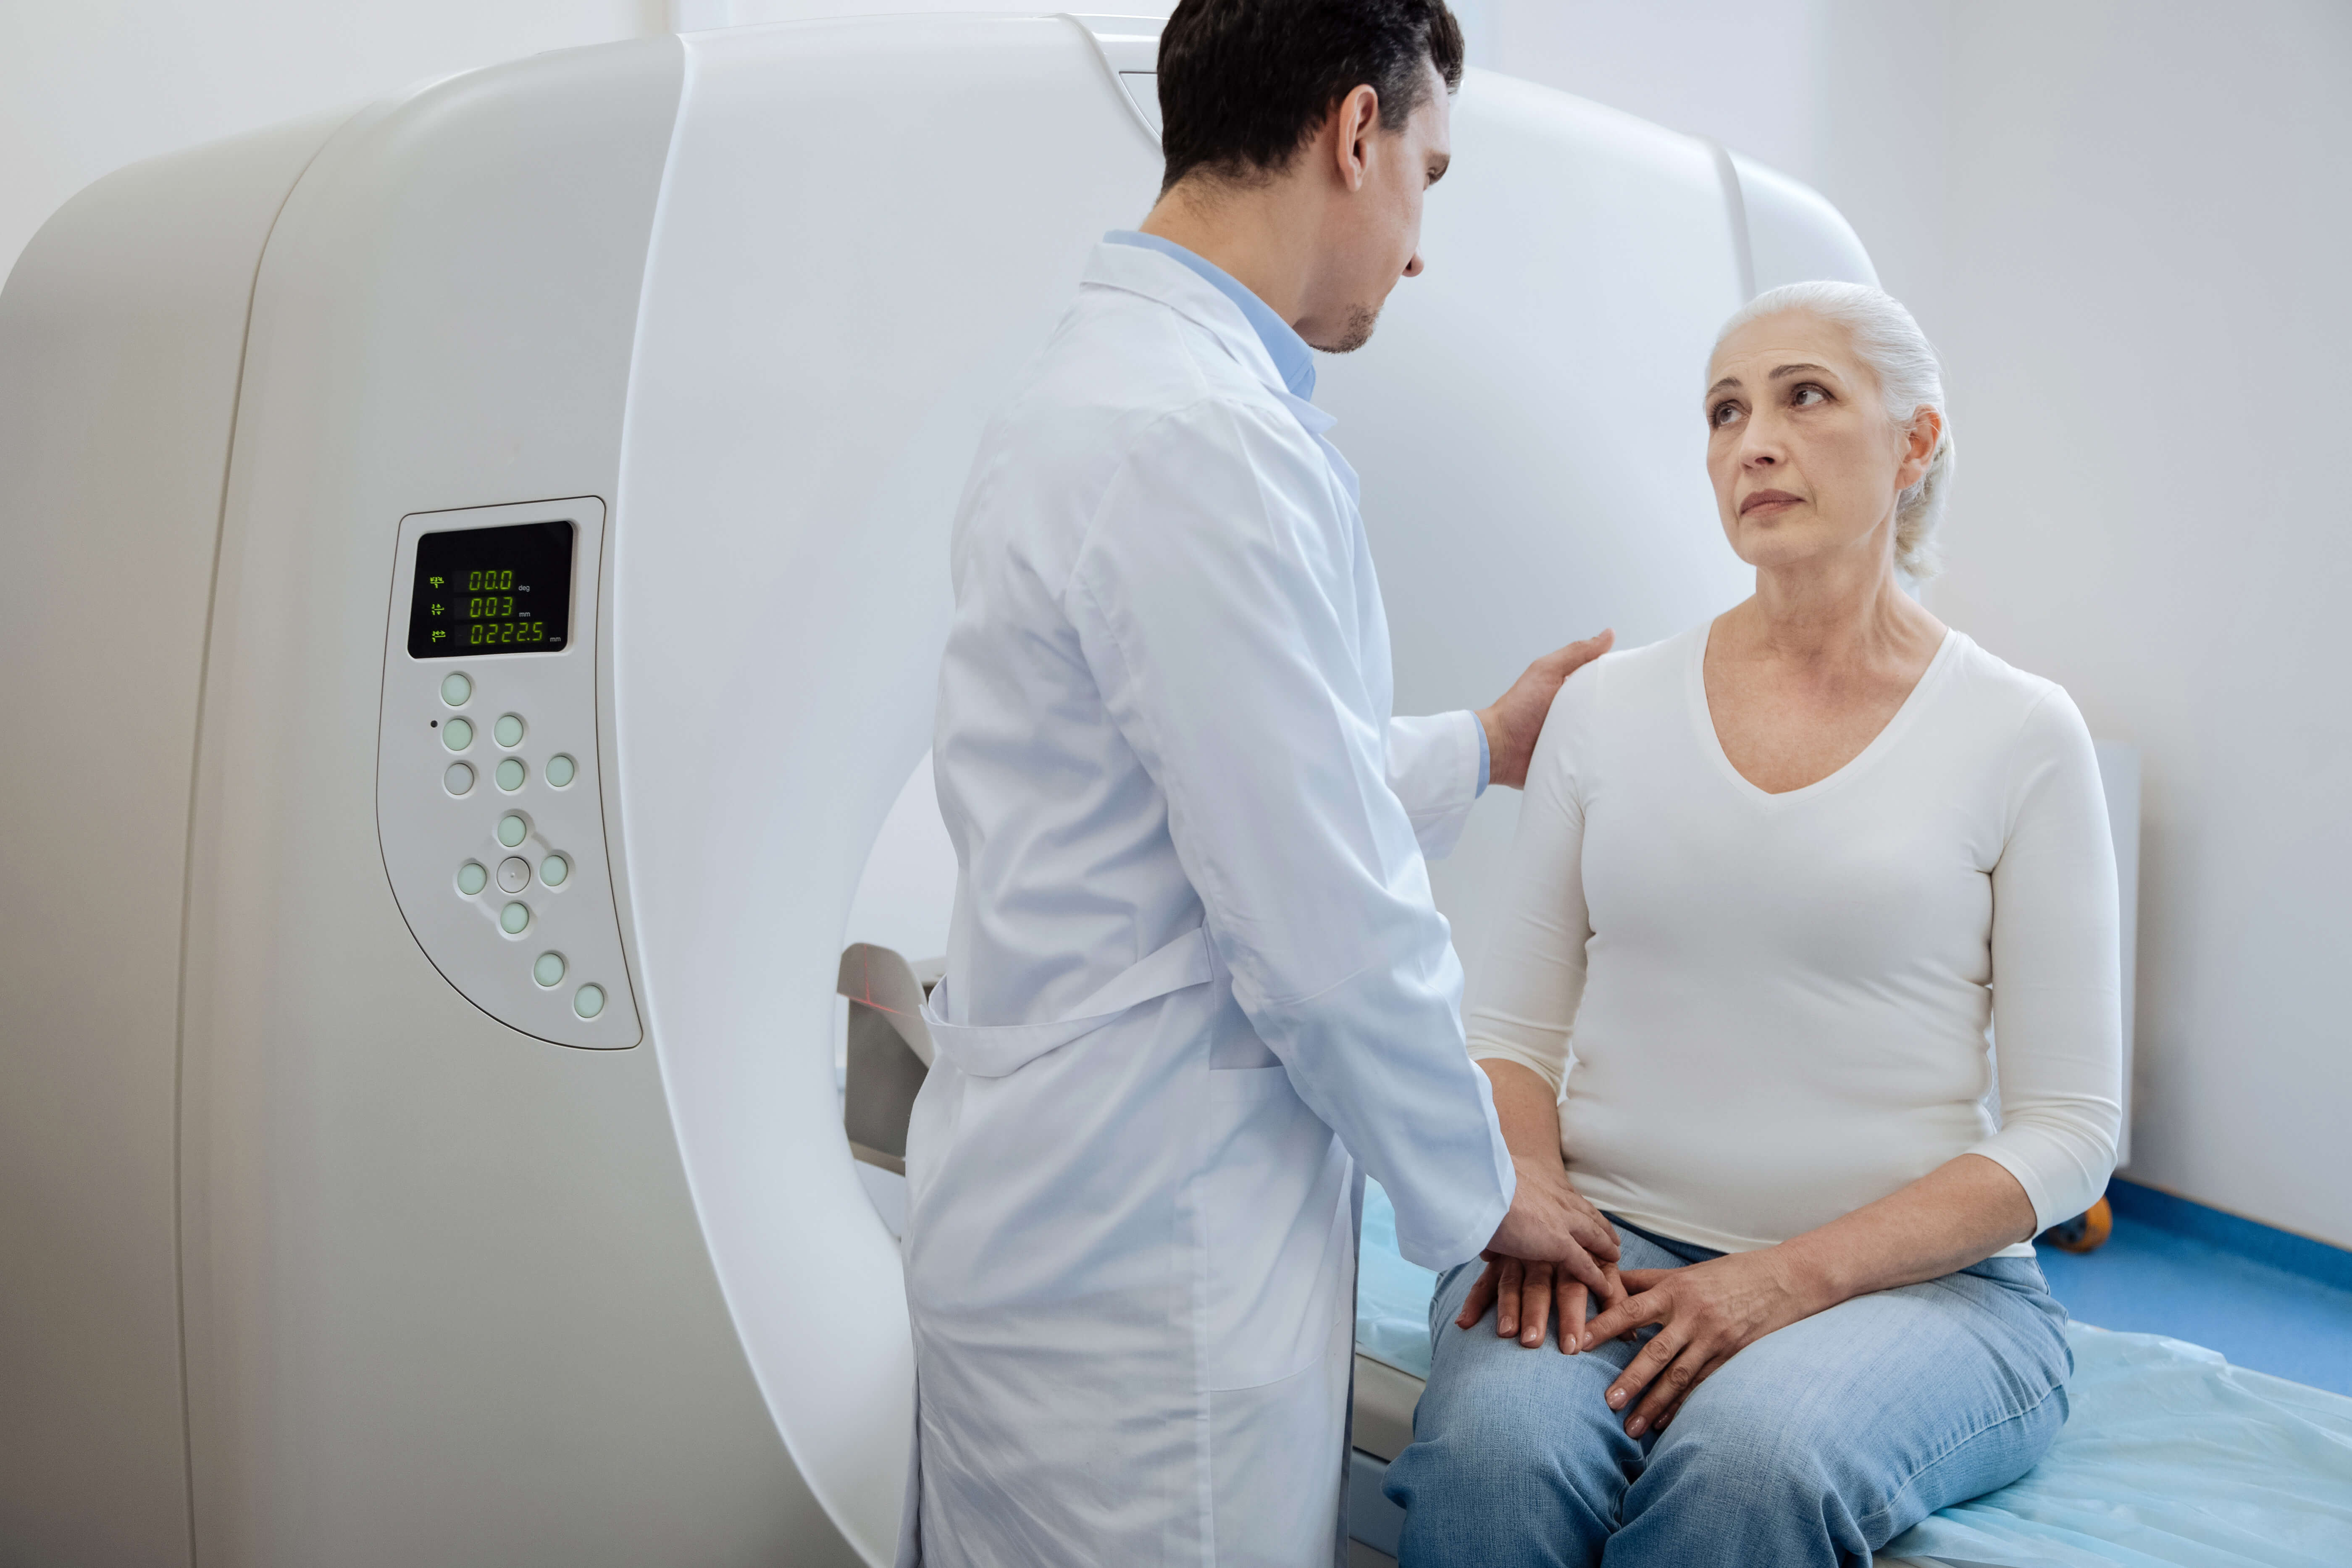 Professional oncologist putting his hand on the patients shoulder and supporting her while telling her the diagnosis